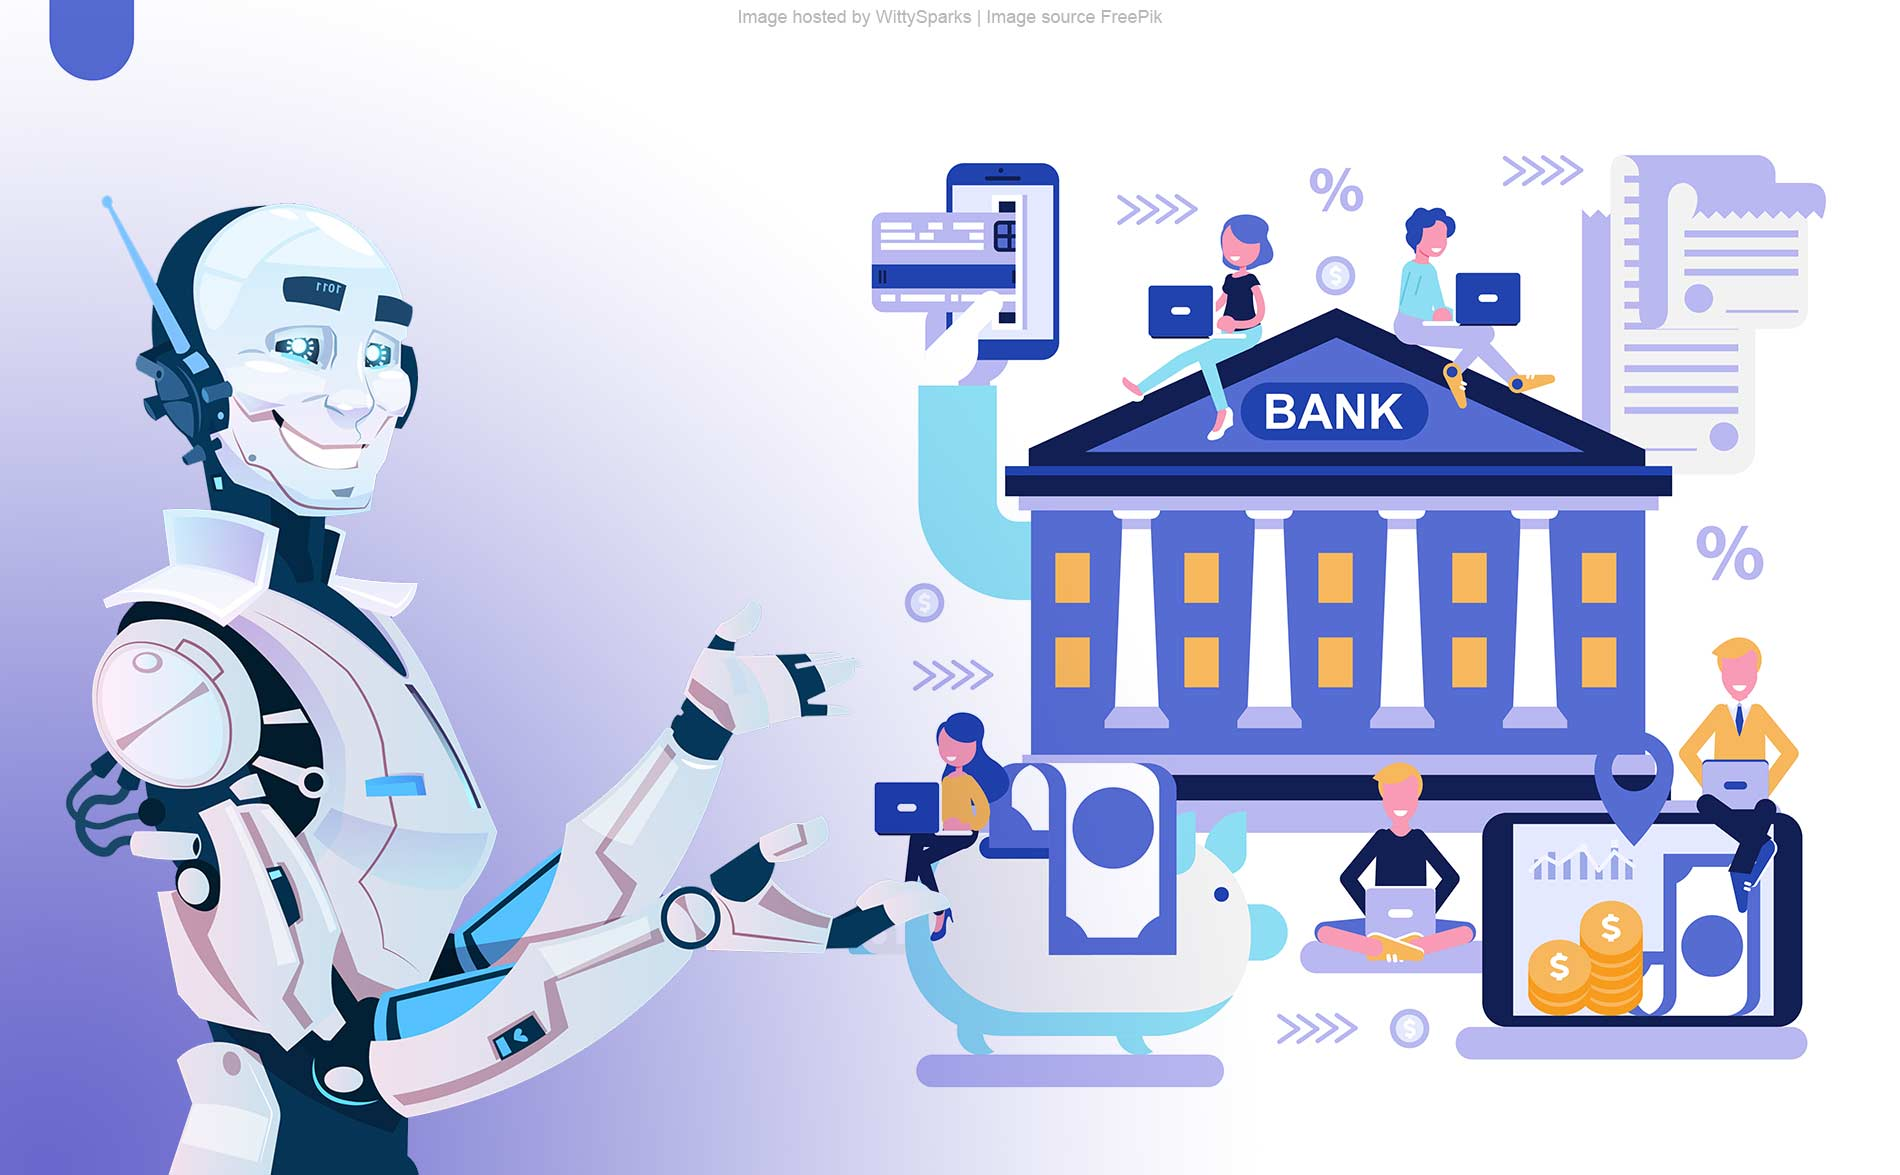 Artificial Intelligence in online banking sector